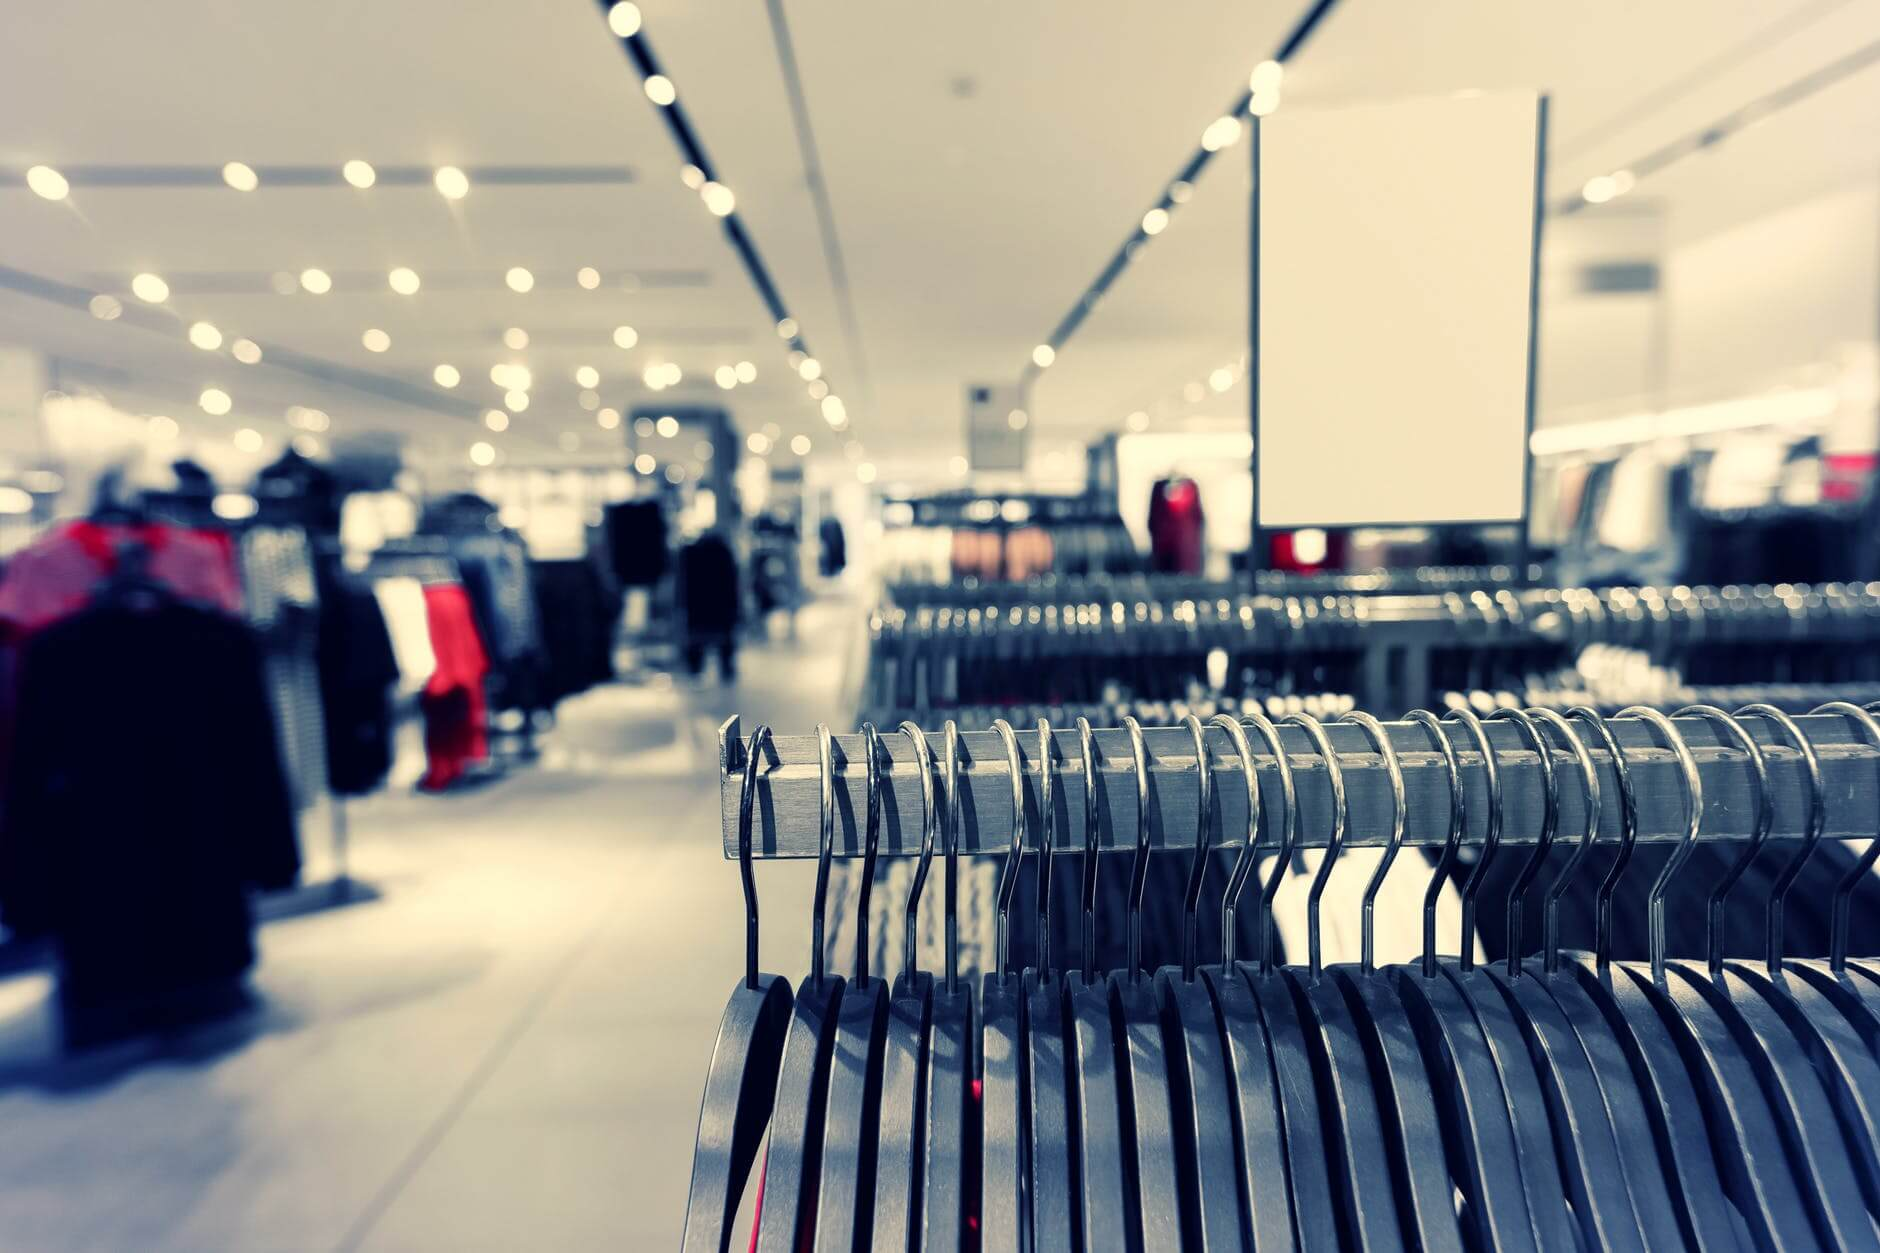 The state of the retail industry in APAC: VISEO experts comment - Part 2